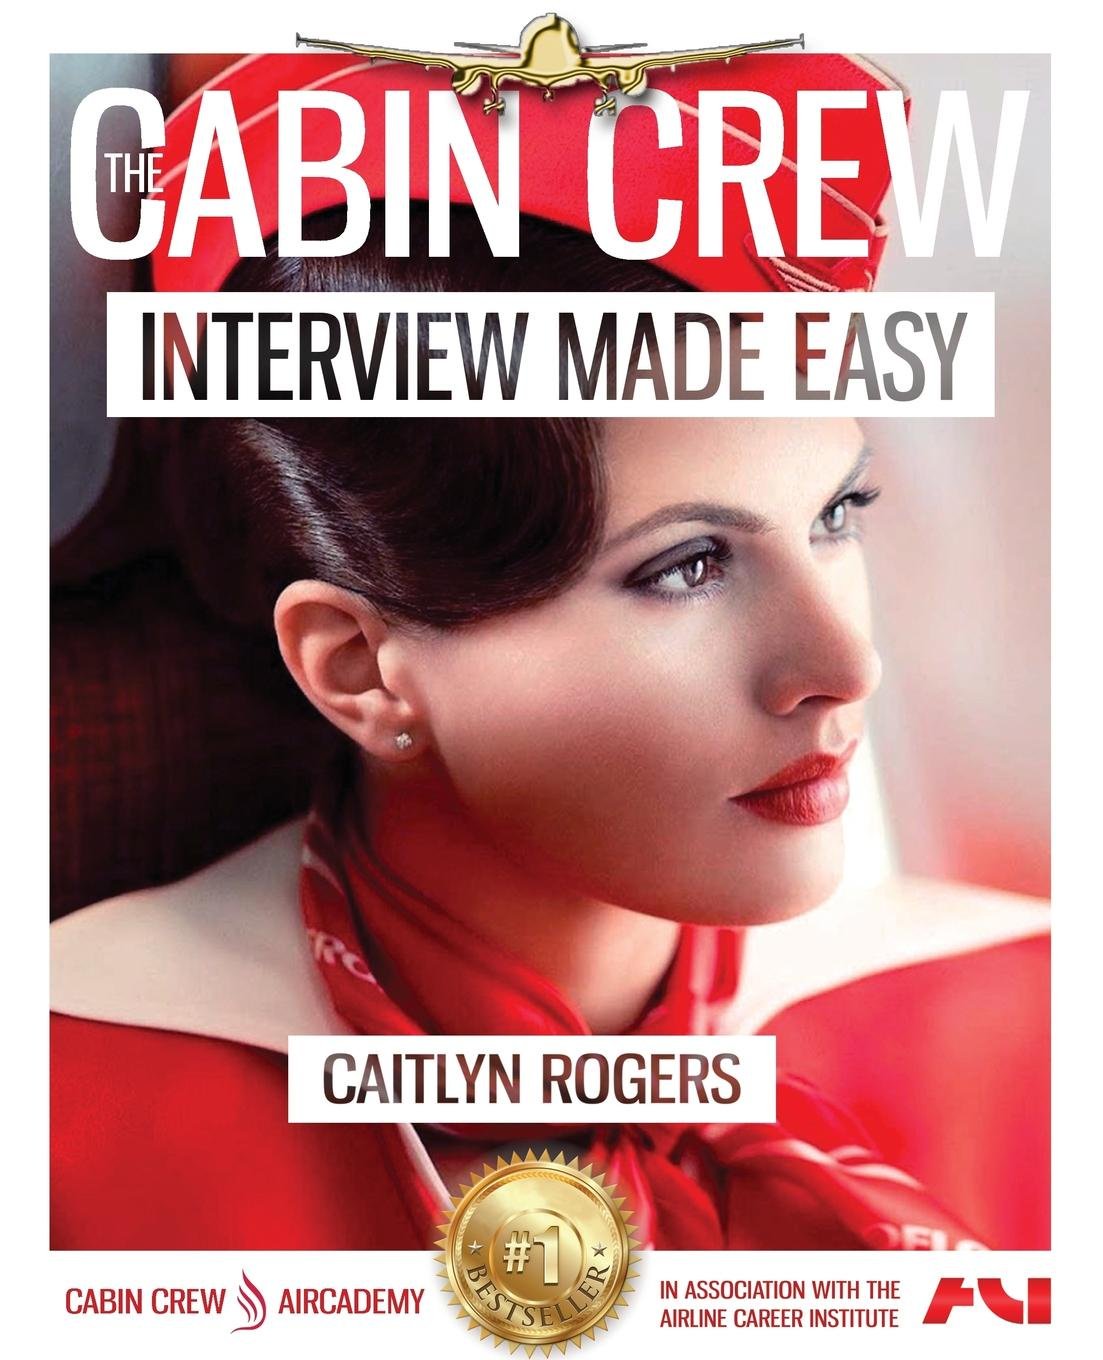 Caitlyn Rogers The Cabin Crew Interview Made Easy Workbook (2017). The Ultimate Step By Step Blueprint to Acing the Flight Attendant Interview how2become cabin crew interview questions and answers sample interview questions and answers for the cabin crew interview